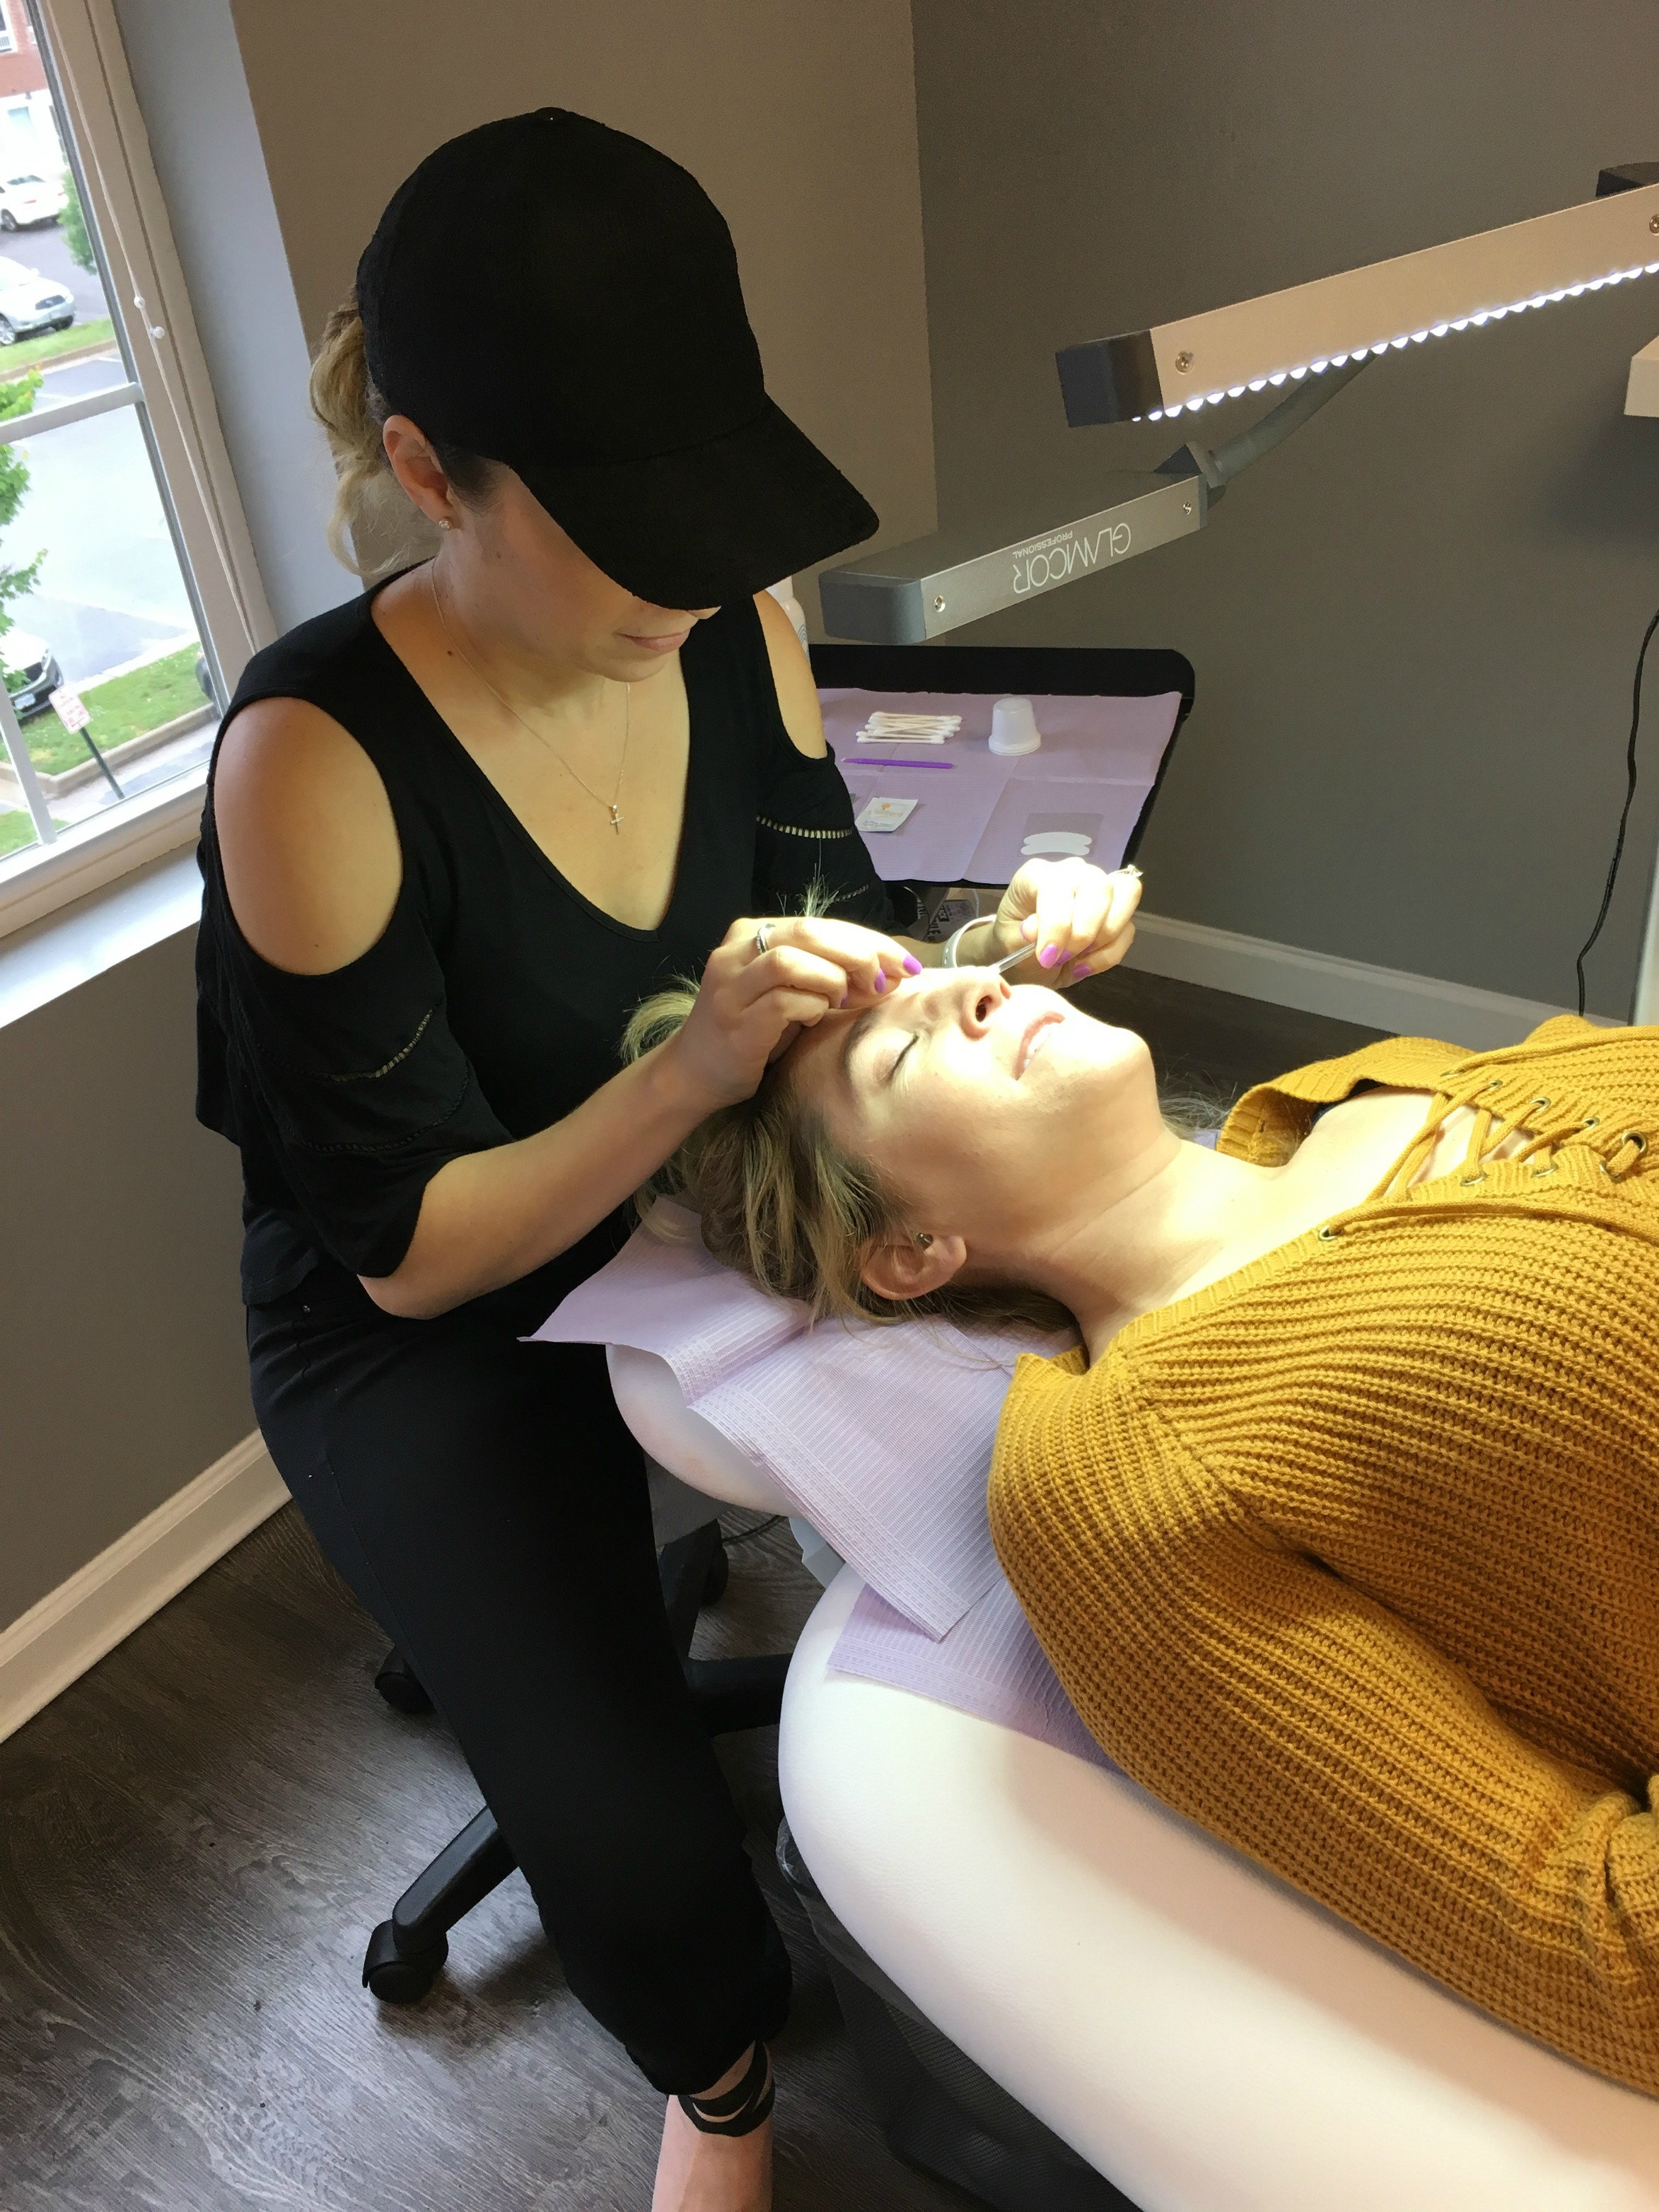 Have you been on the fence about a lash lift and tint? Life and style blogger, The Samantha Show, shares her experience with a lash lift and tint.